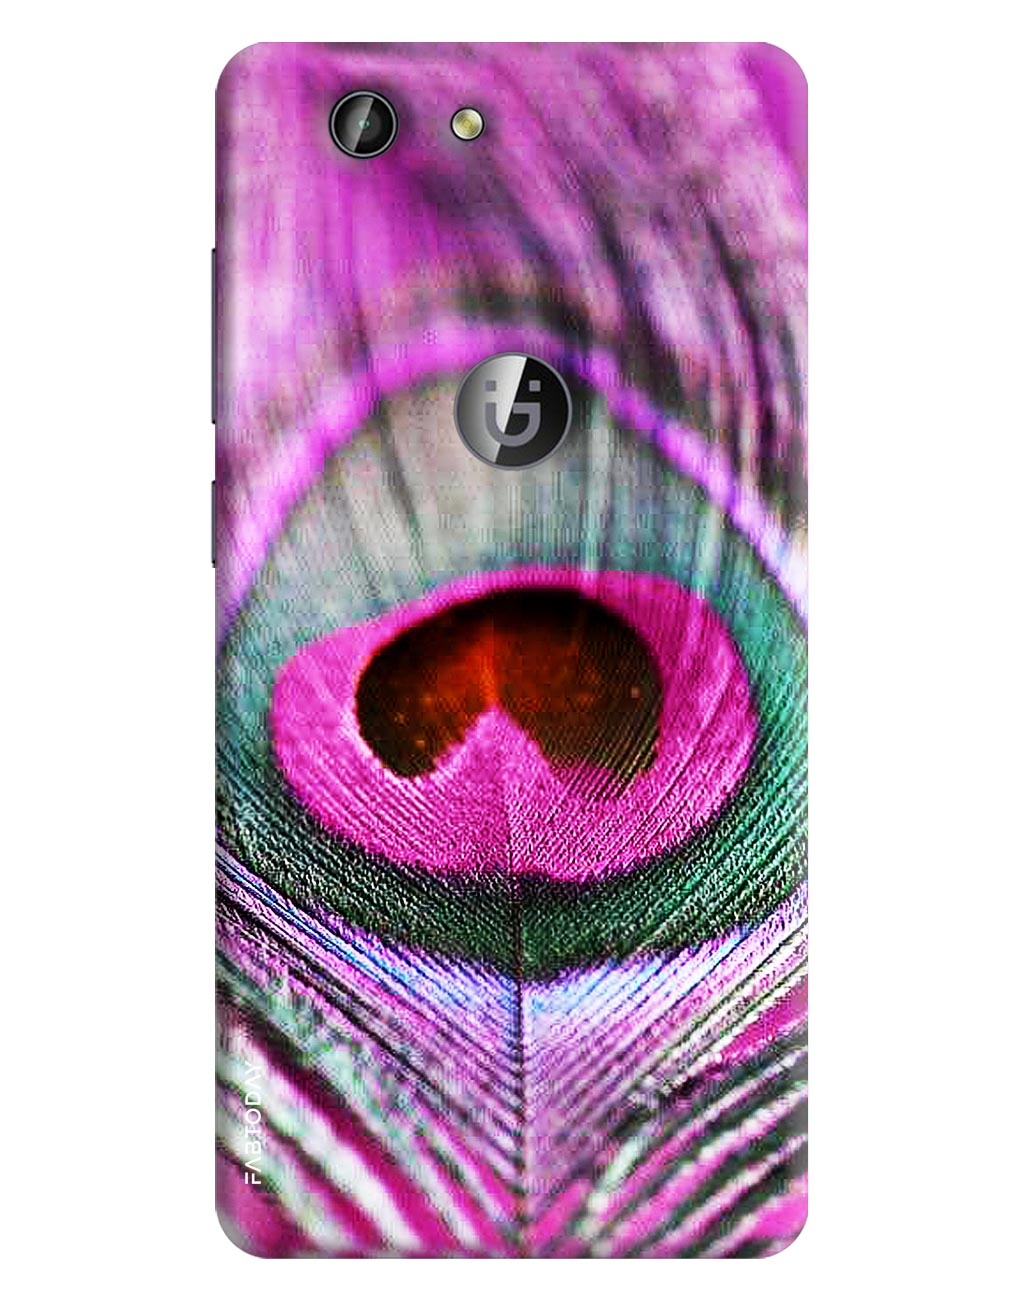 Peacock Back Cover for Gionee F103 Pro